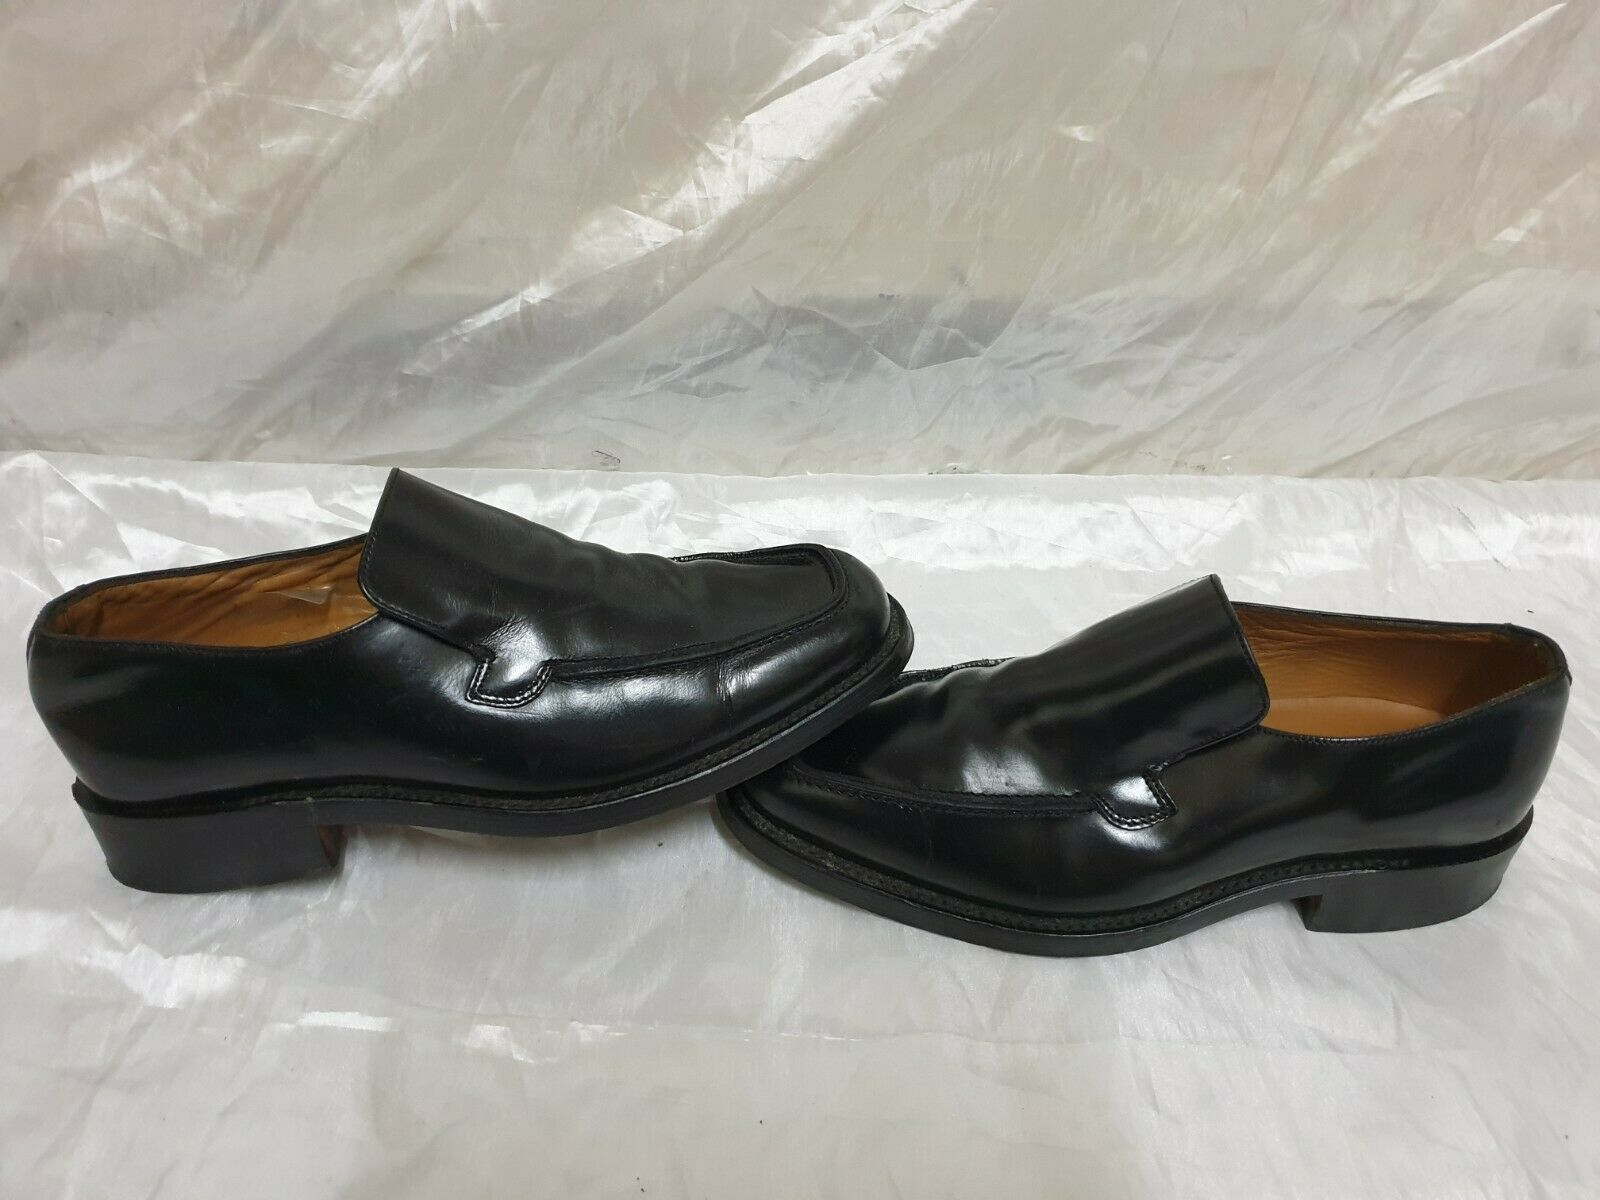 loake goodyear welted mens black shoes size uk 6.5 / eu 39.5 made in england